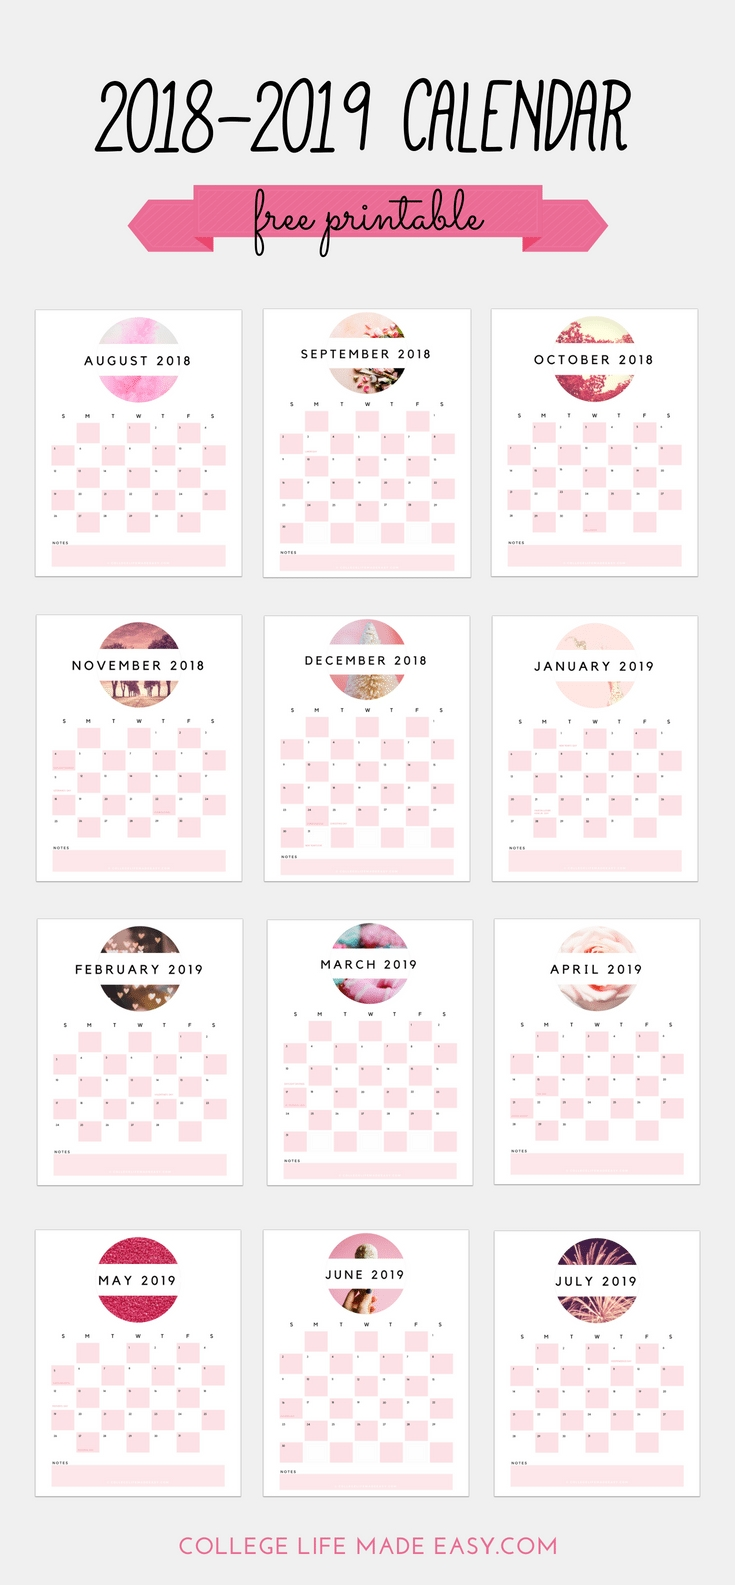 Free 2018 - 2019 Printable Calendar (Cute & In Soft Pink!) within 2019 2020 Girly Calendar Printable